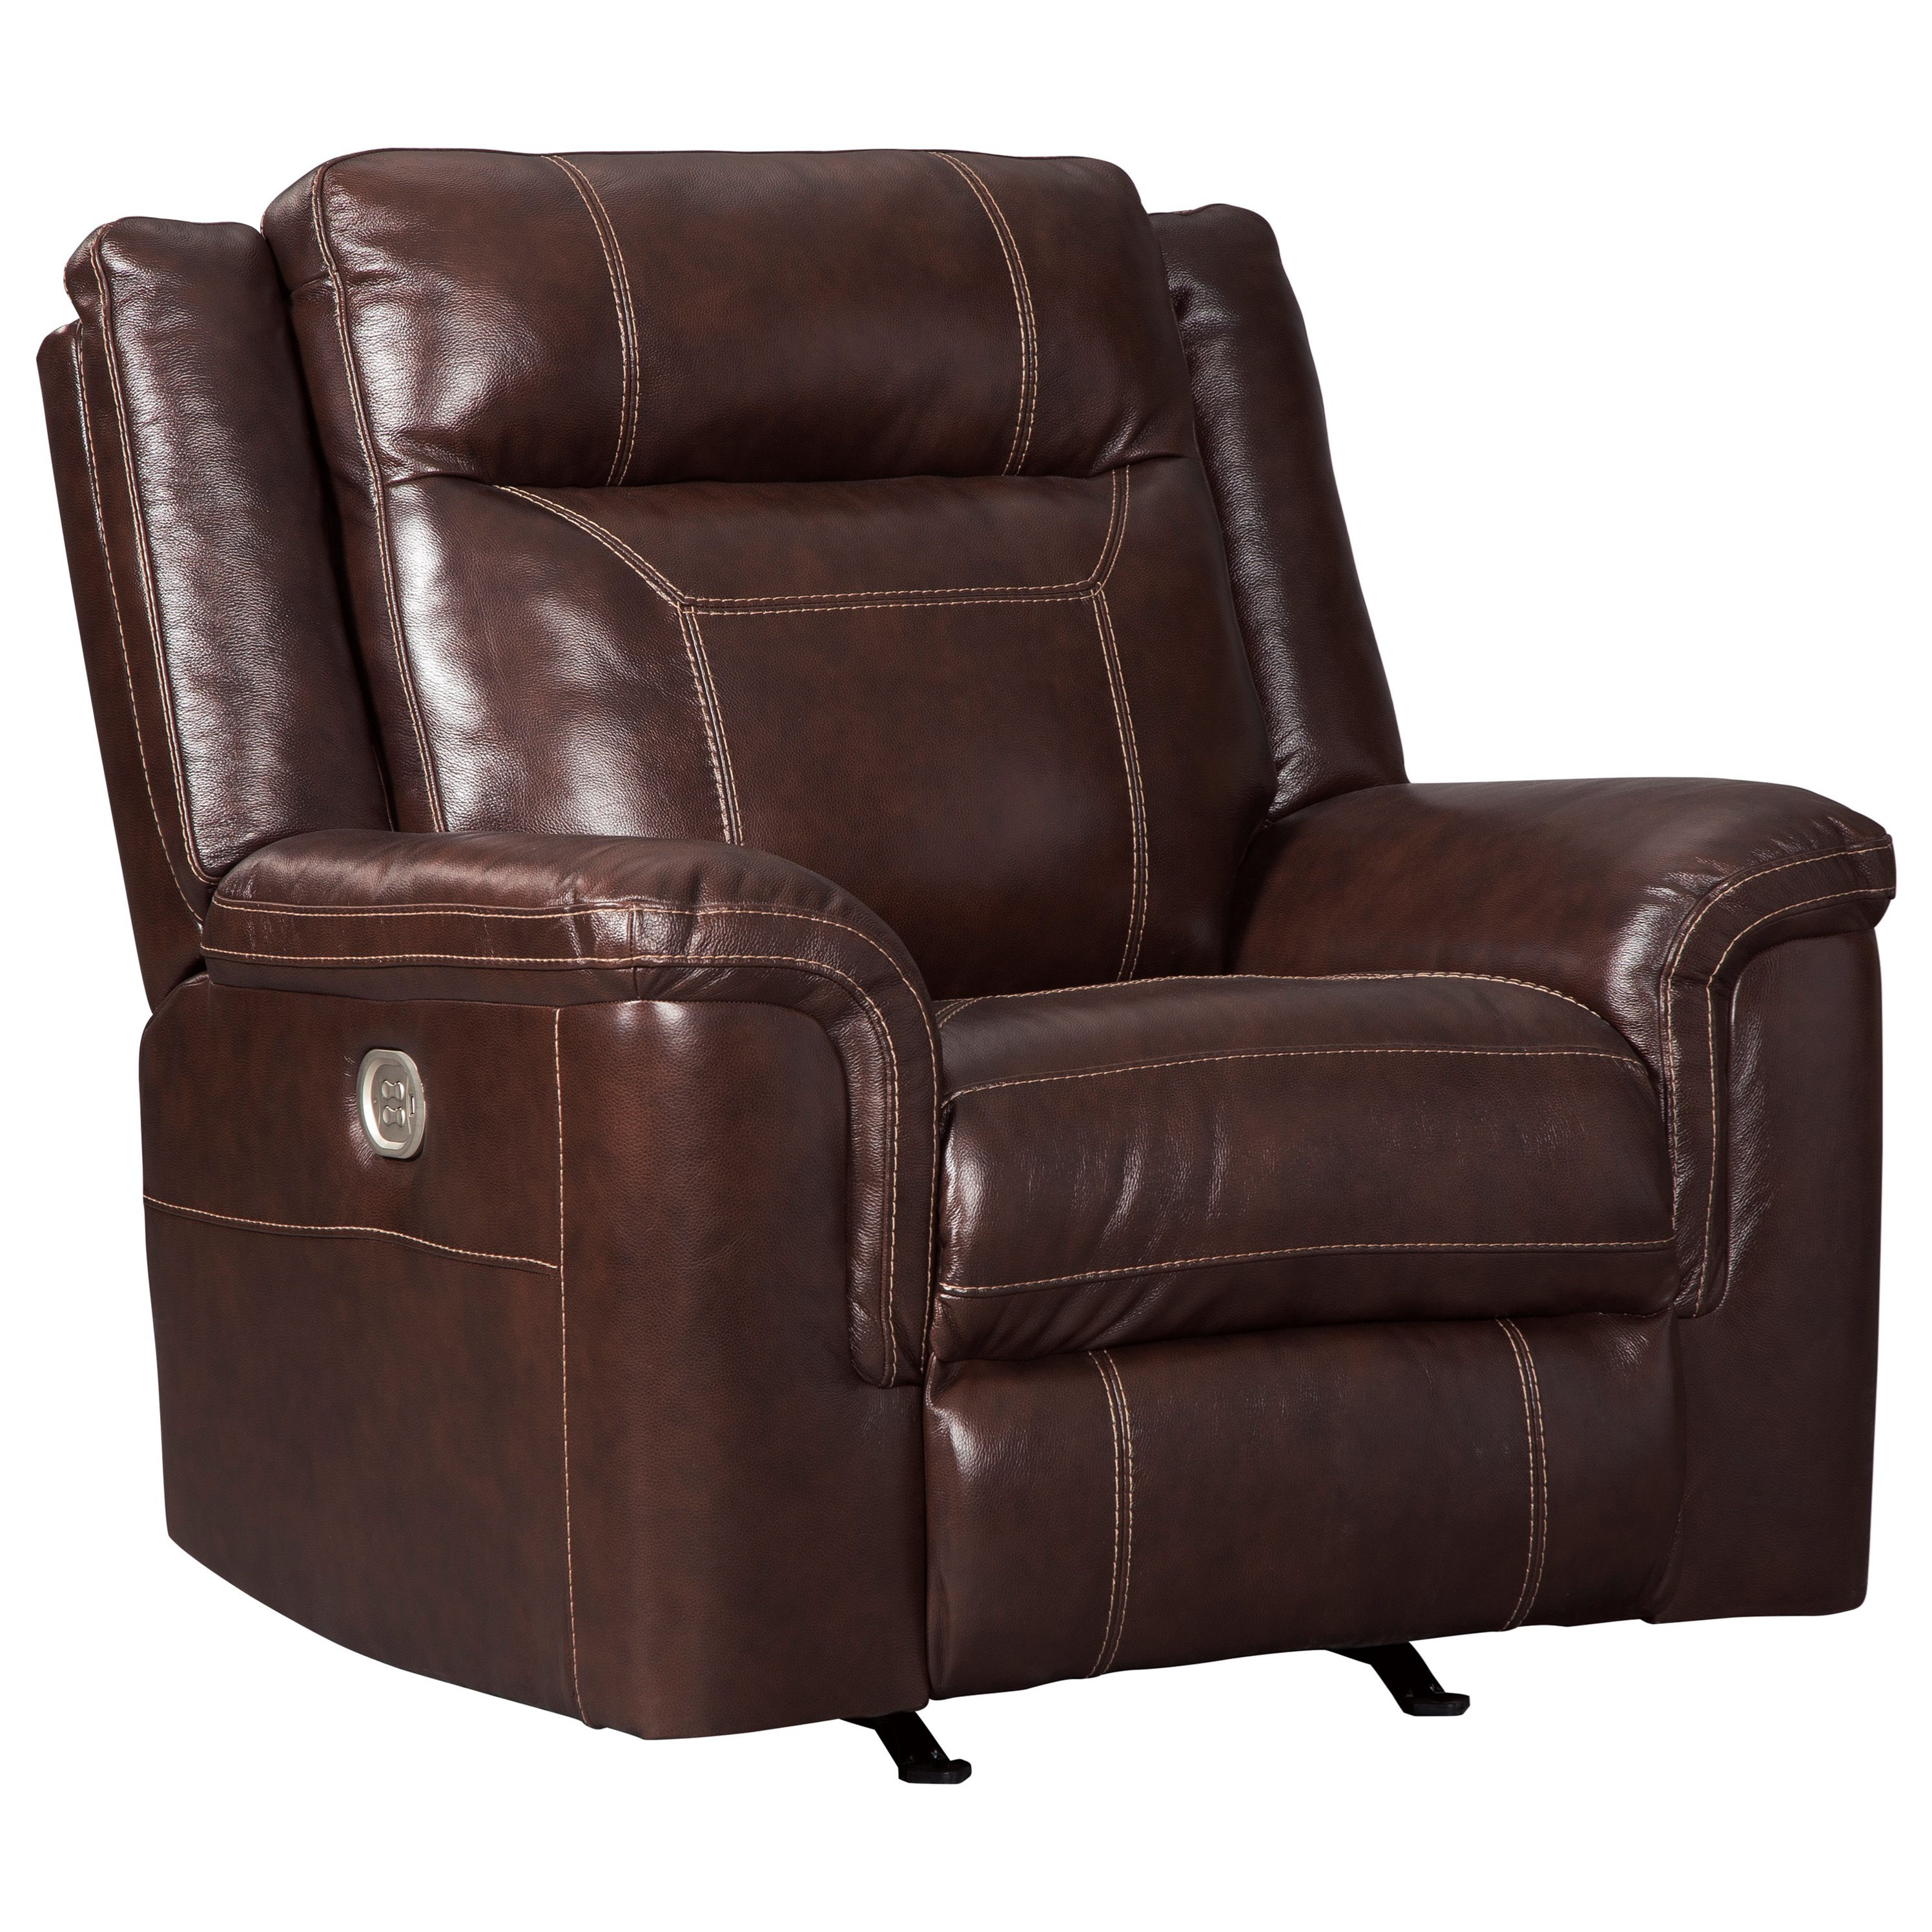 Ashley Furniture Recliners: Signature Design By Ashley Wyline Power Rocker Recliner With Adjustable Headrest